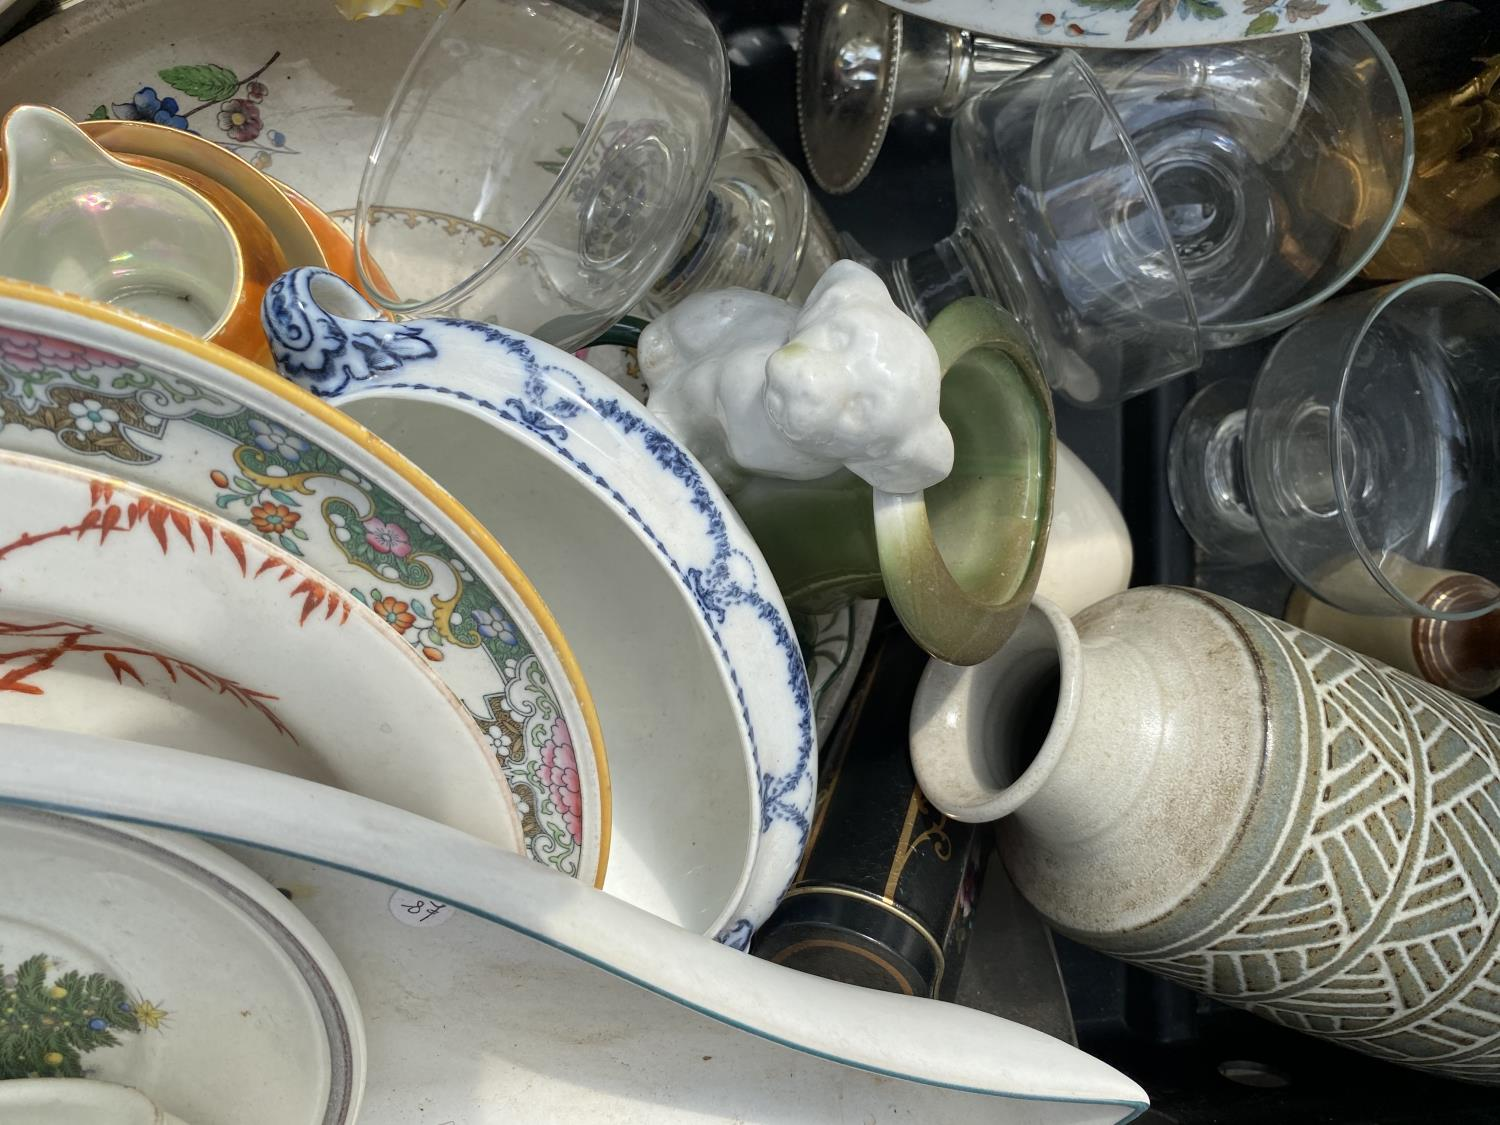 AN ASSORTMENT OF HOUSEHOLD CLEARANCE ITEMS TO INCLUDE CERAMICS AND GLASS WARE ETC - Image 3 of 6